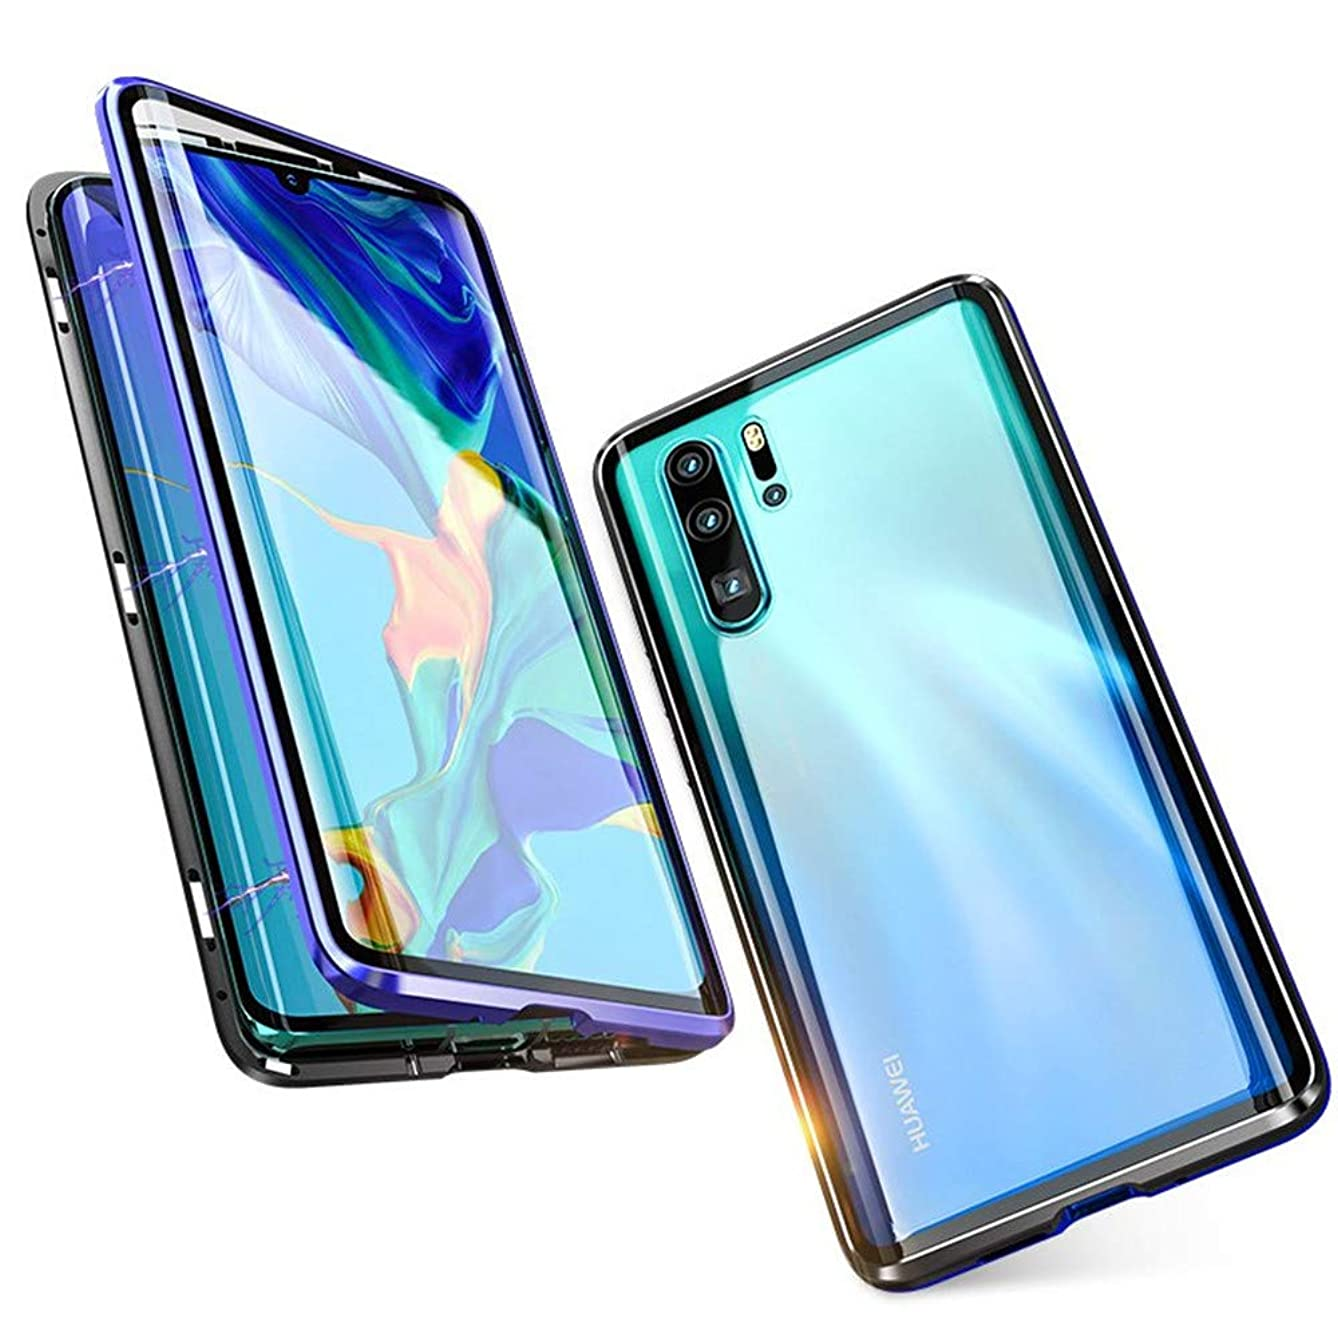 HIKERCLUB Huawei P30 Pro Magnetic Case Full Body Protection Metal Glass Flip Built-in Screen Protector Front and Back 9H Tempered Glass Clear Touchable HD Cover for Huawei P30 Pro (Blue)